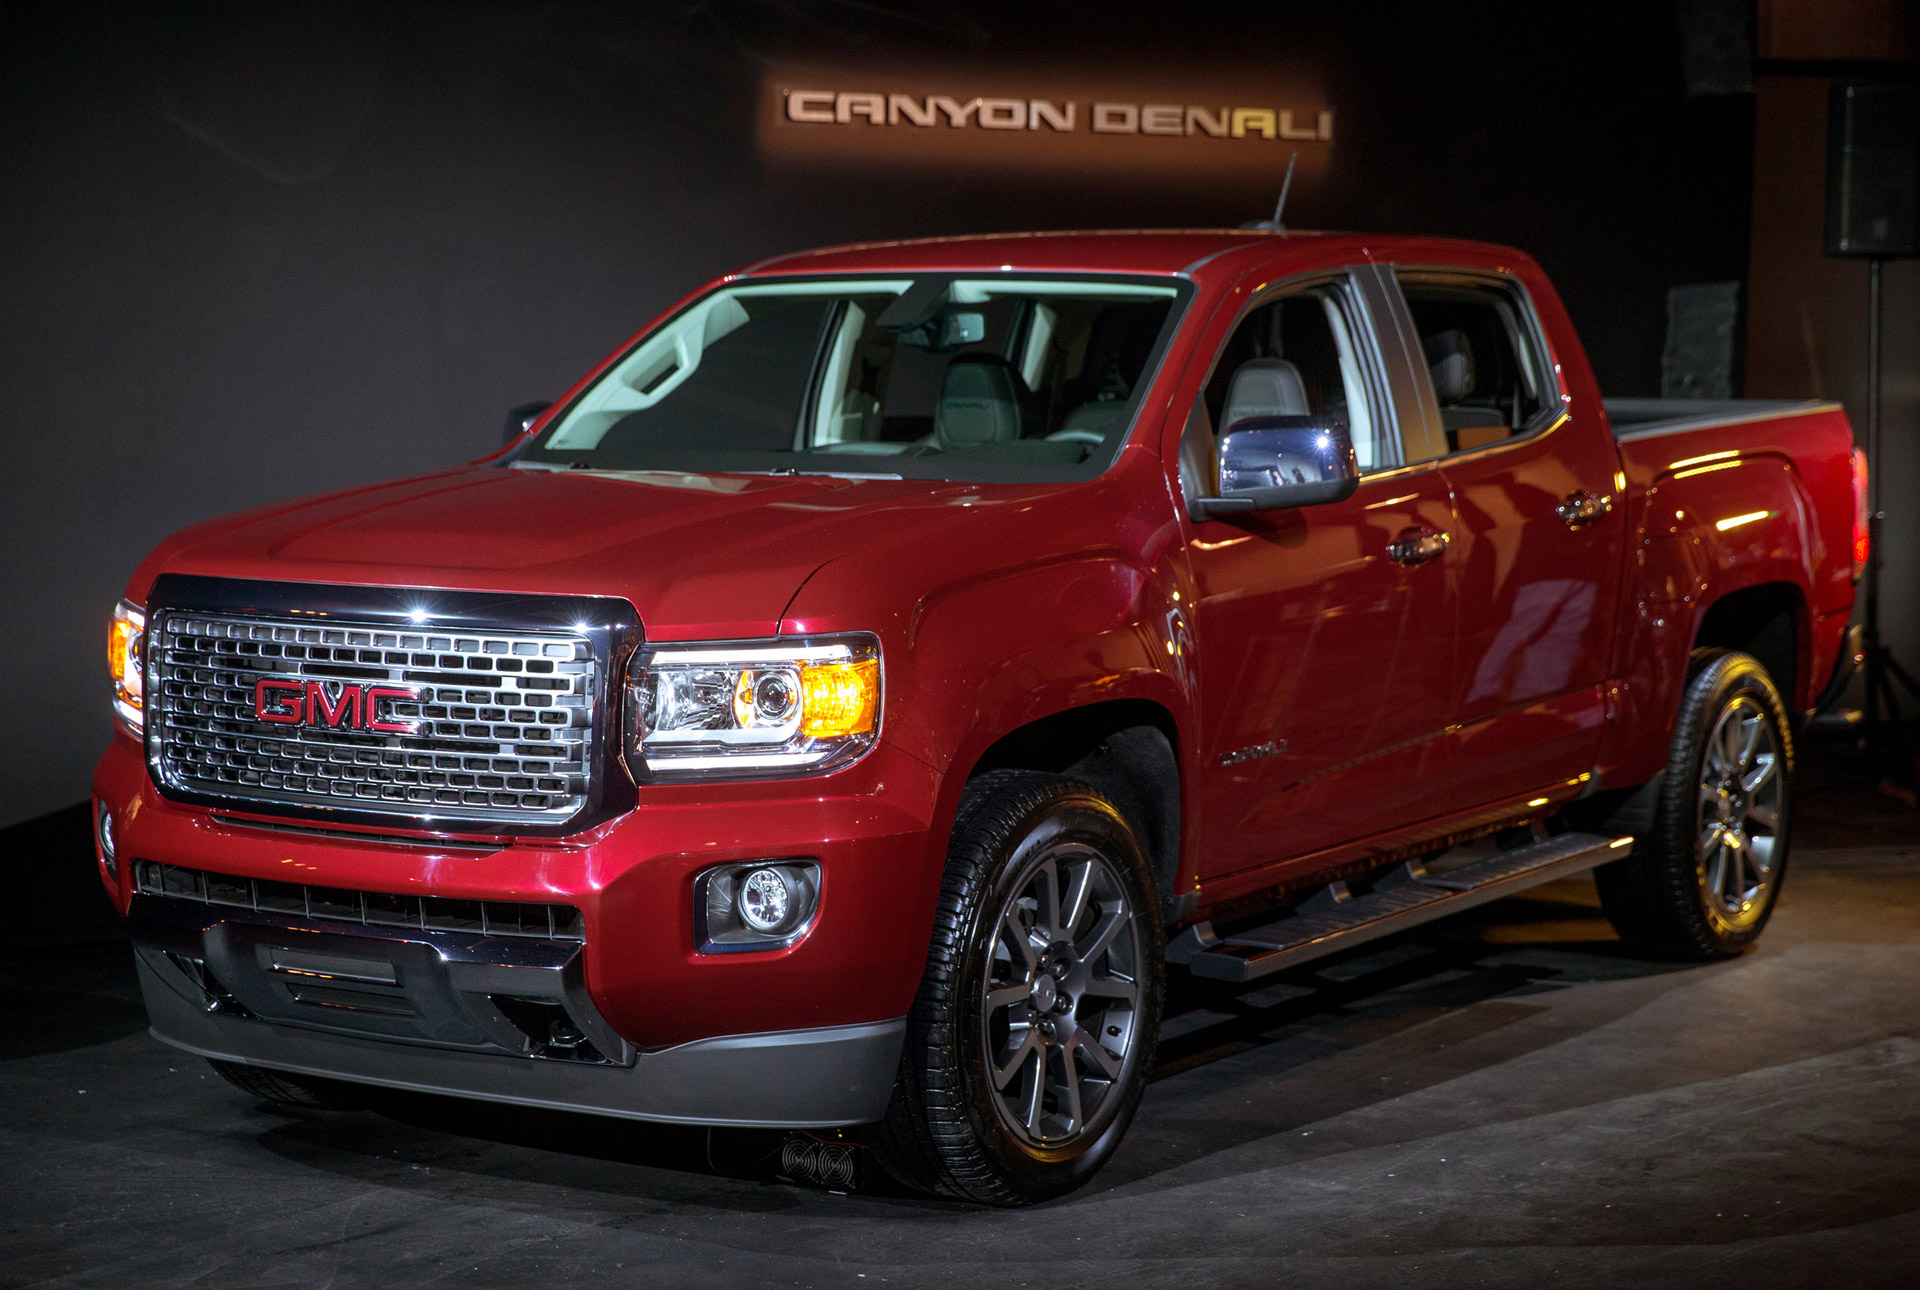 2017 Gmc Canyon Denali Drops In Ahead Of L A Auto Show